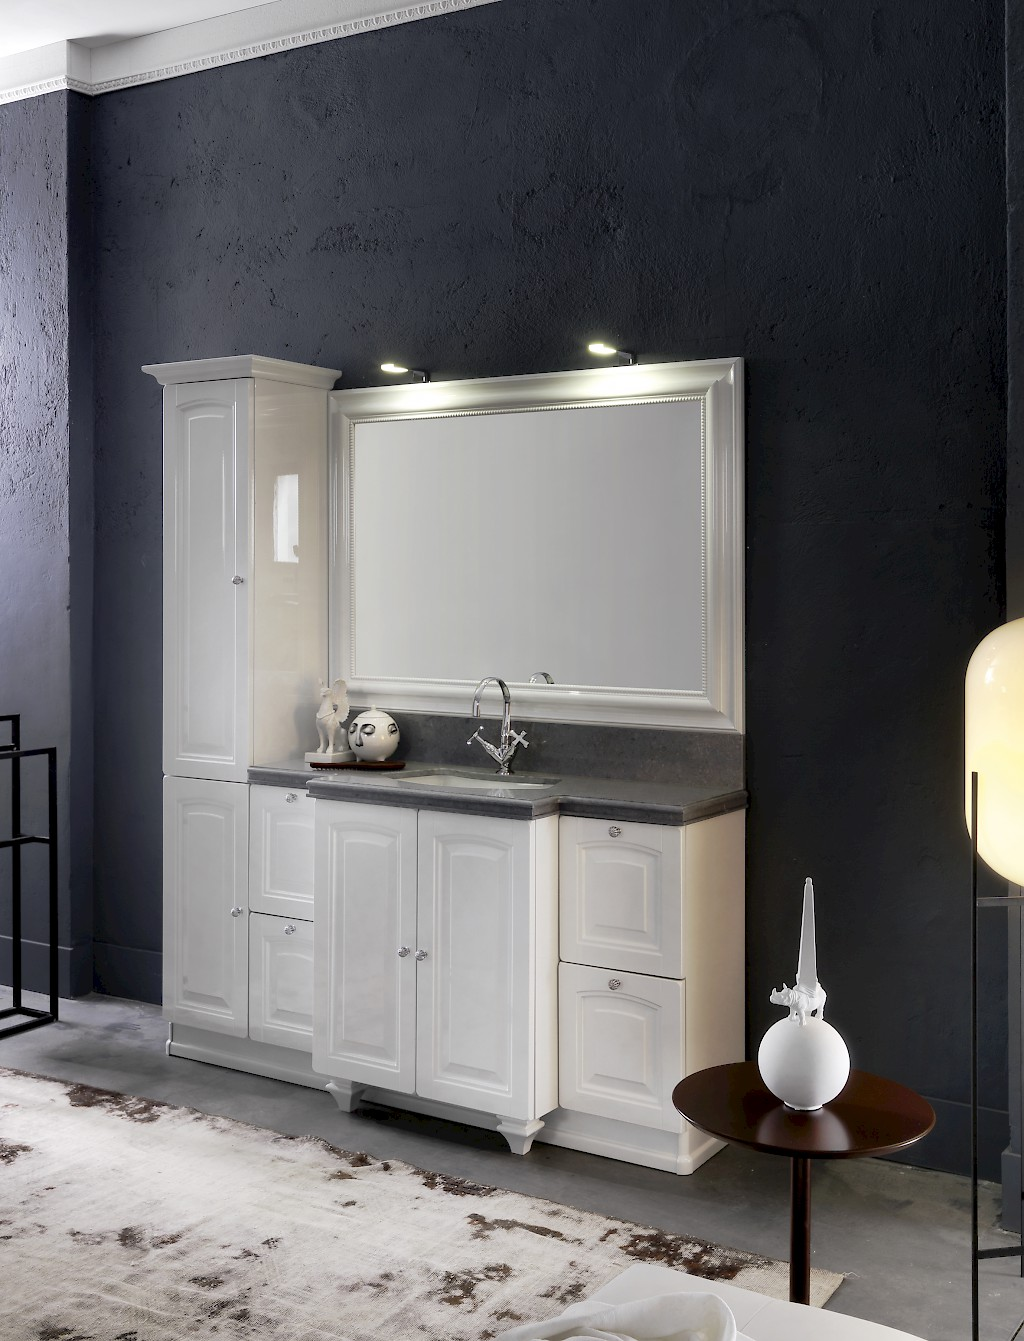 Acanthis ac13 mobile luxury arredo bagno l 181 5 x p 56 for Bagno 38